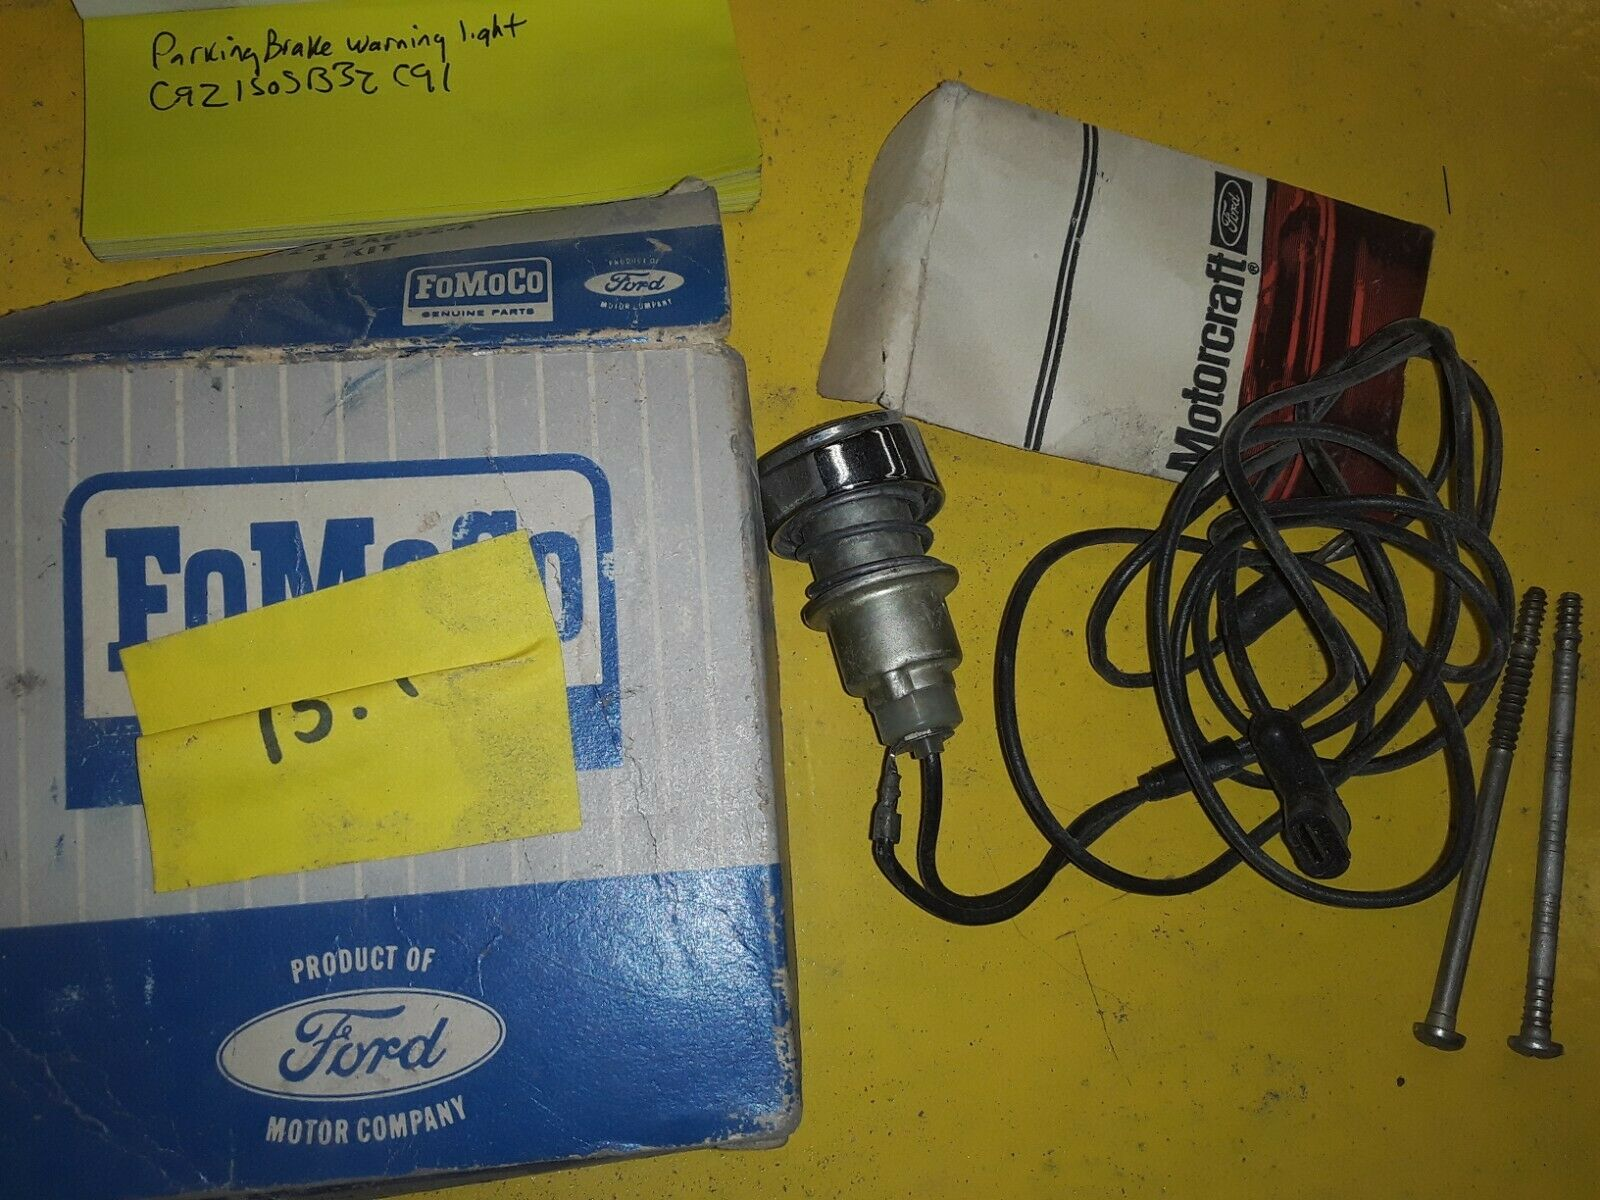 NOS 1966 FORD GALAXIE PARKING BRAKE SIGNAL LAMP KIT C6AZ-15A852-A C6AZ-15A852-A